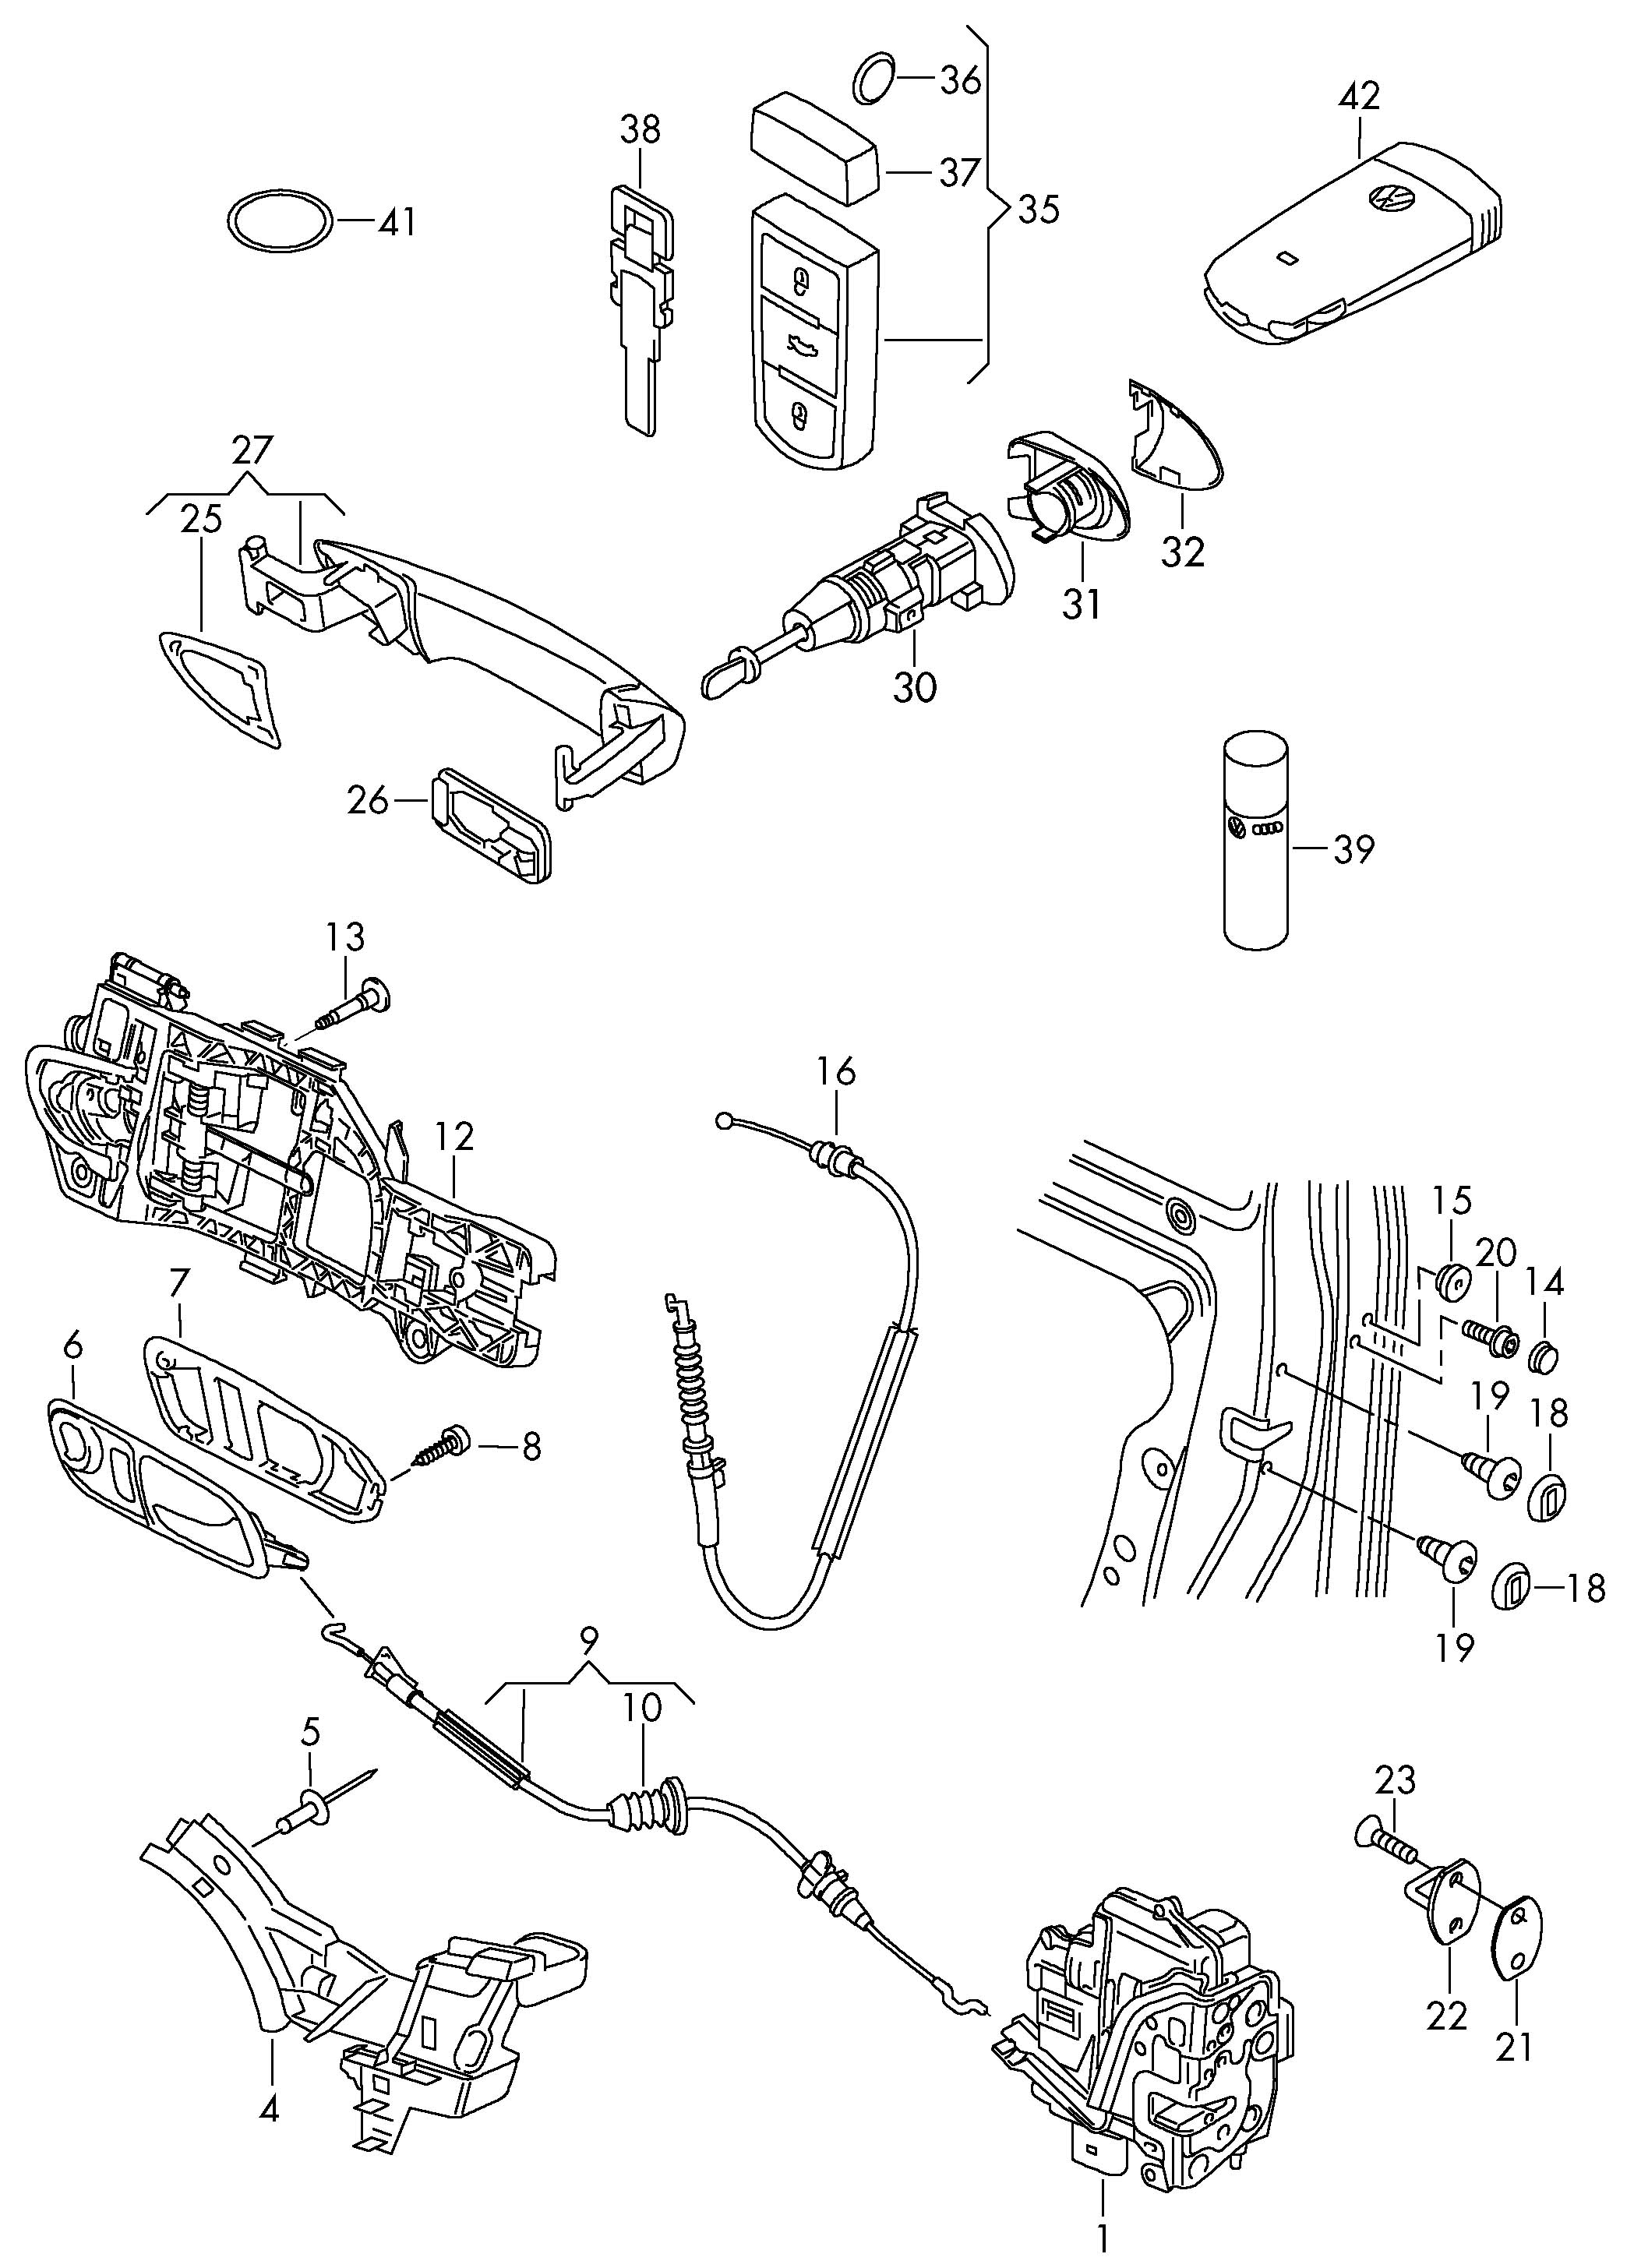 ShowAssembly furthermore 2014 Ford F150 Fuse Box likewise Where Is The Crankshaft Sensor Located On 2002 Volkswagen Jetta 1 8turbo 101446 likewise 2012 Kia Optima Front Strut Removal And Installation additionally Diagrams To Remove 2009 Audi S8 Driver Door Panel. on 2009 volkswagen jetta interior